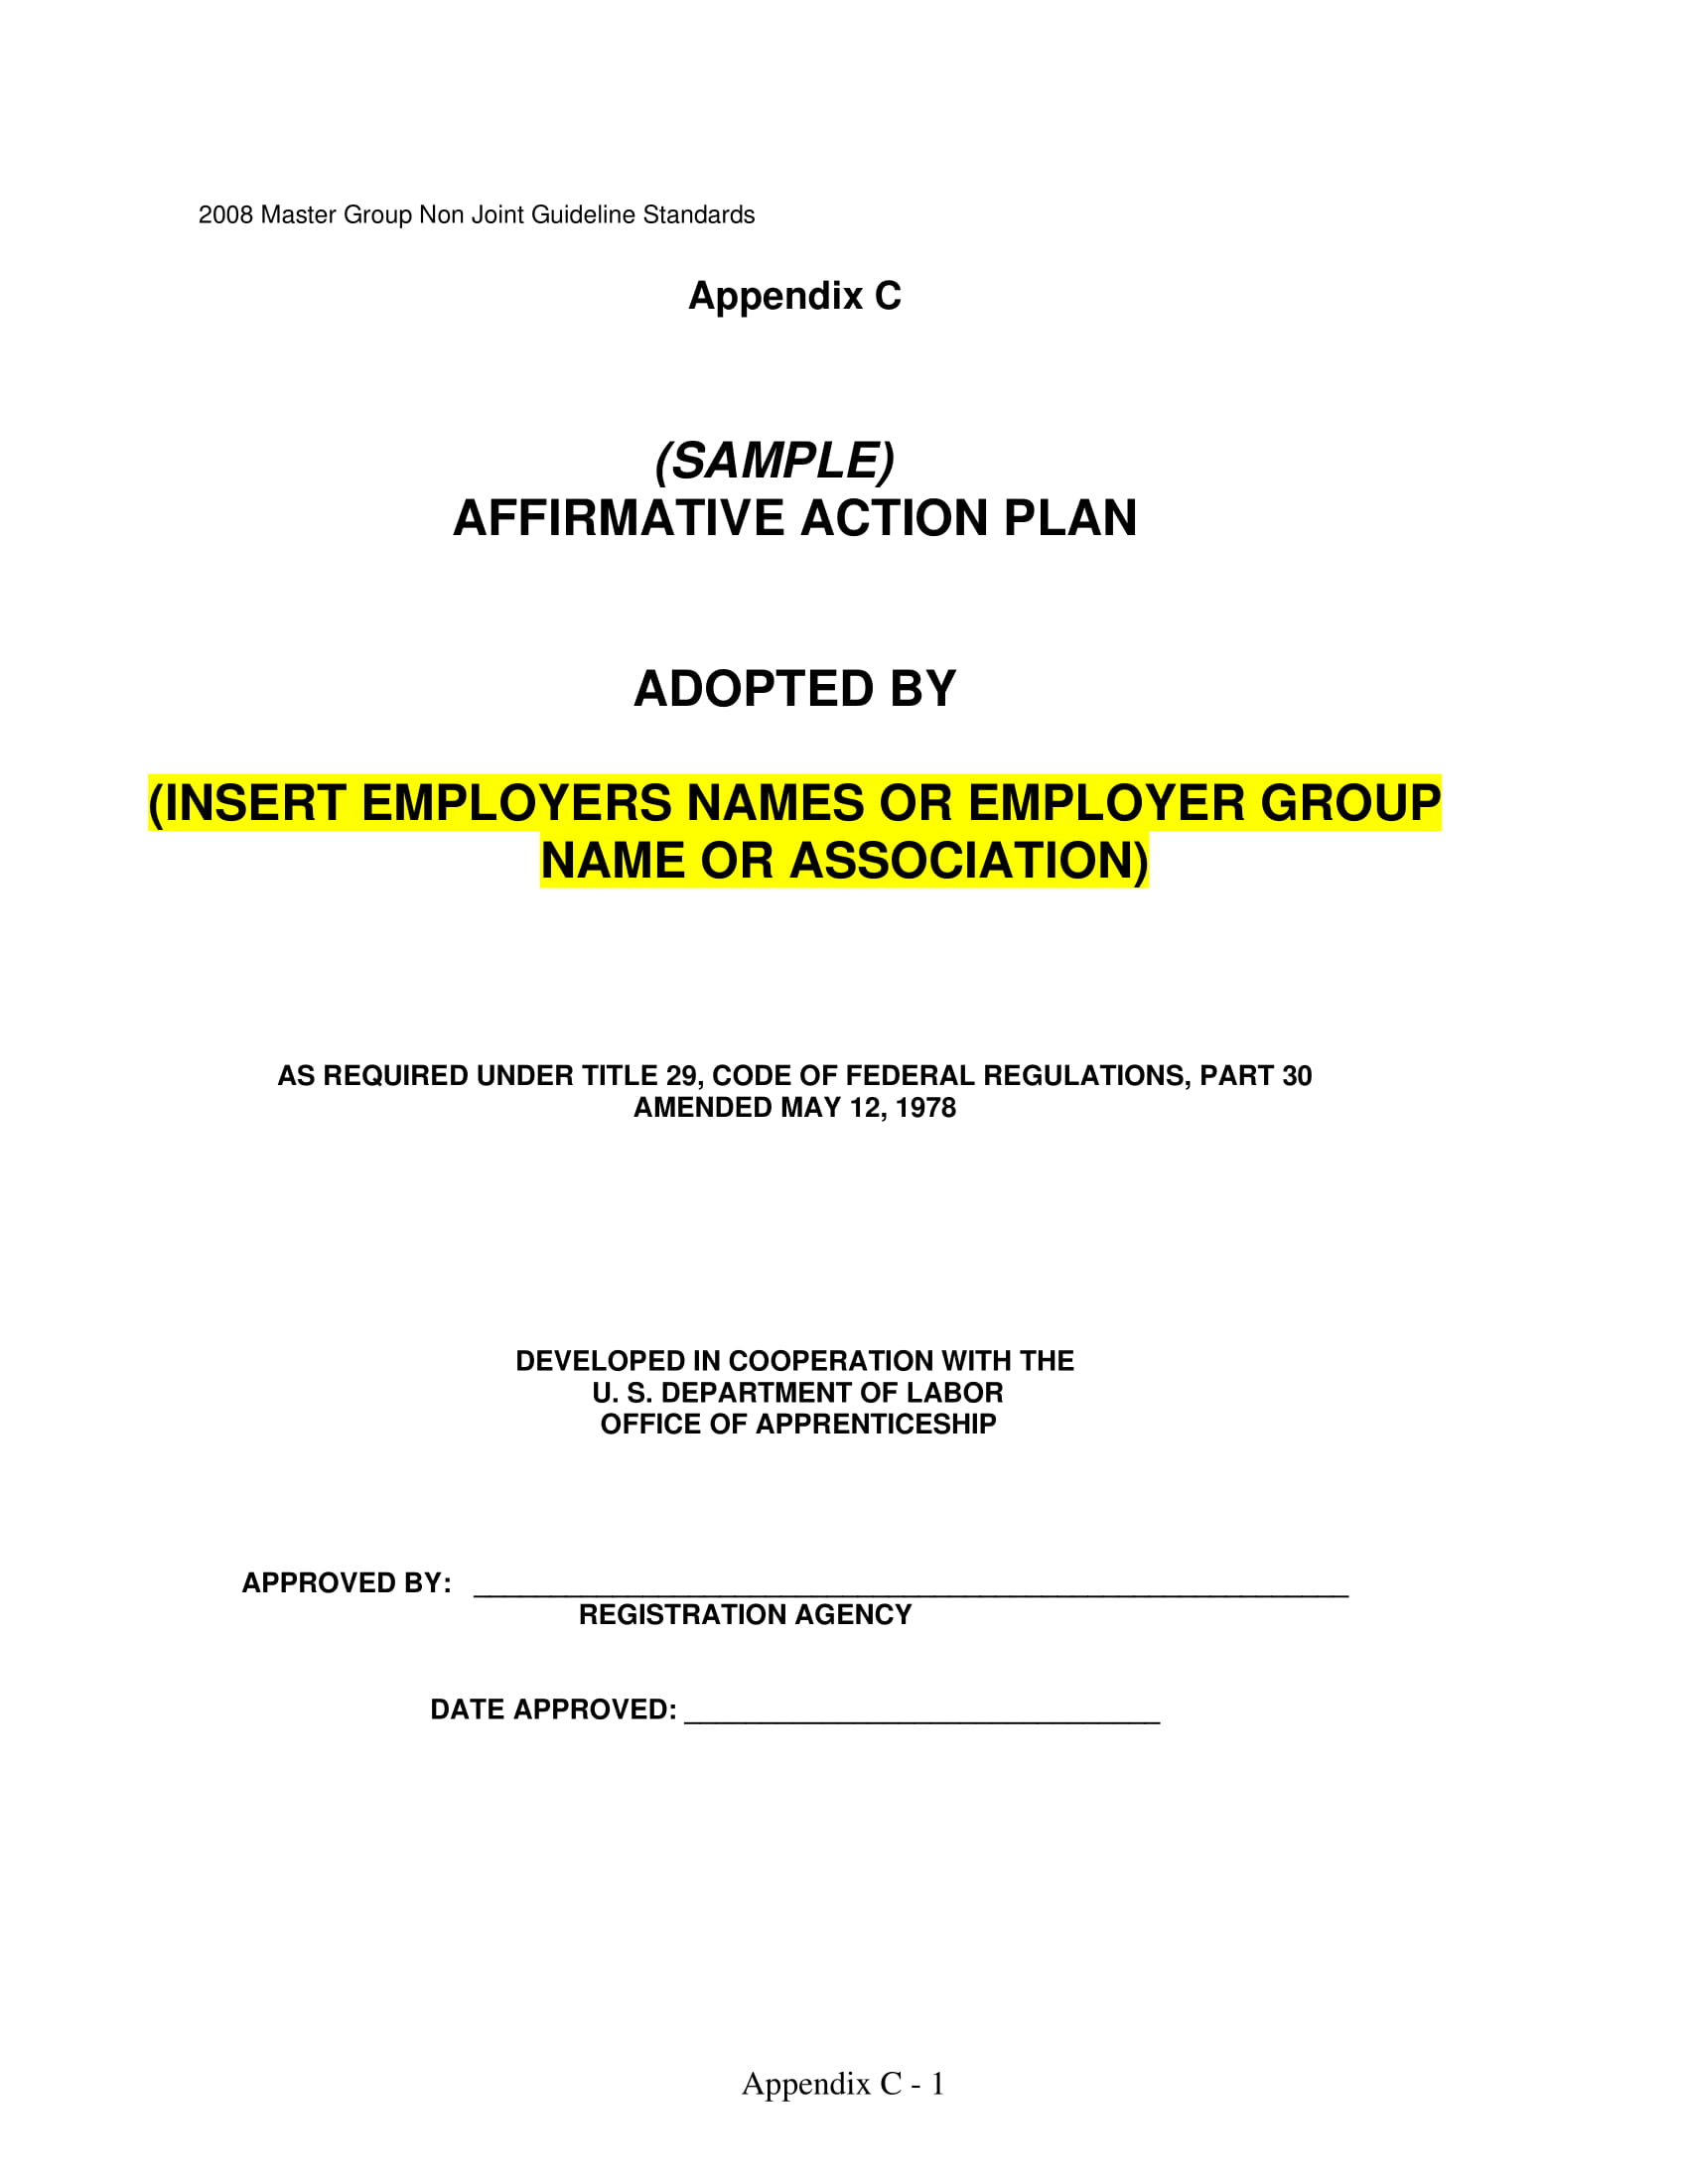 basic affirmative action plan example 1